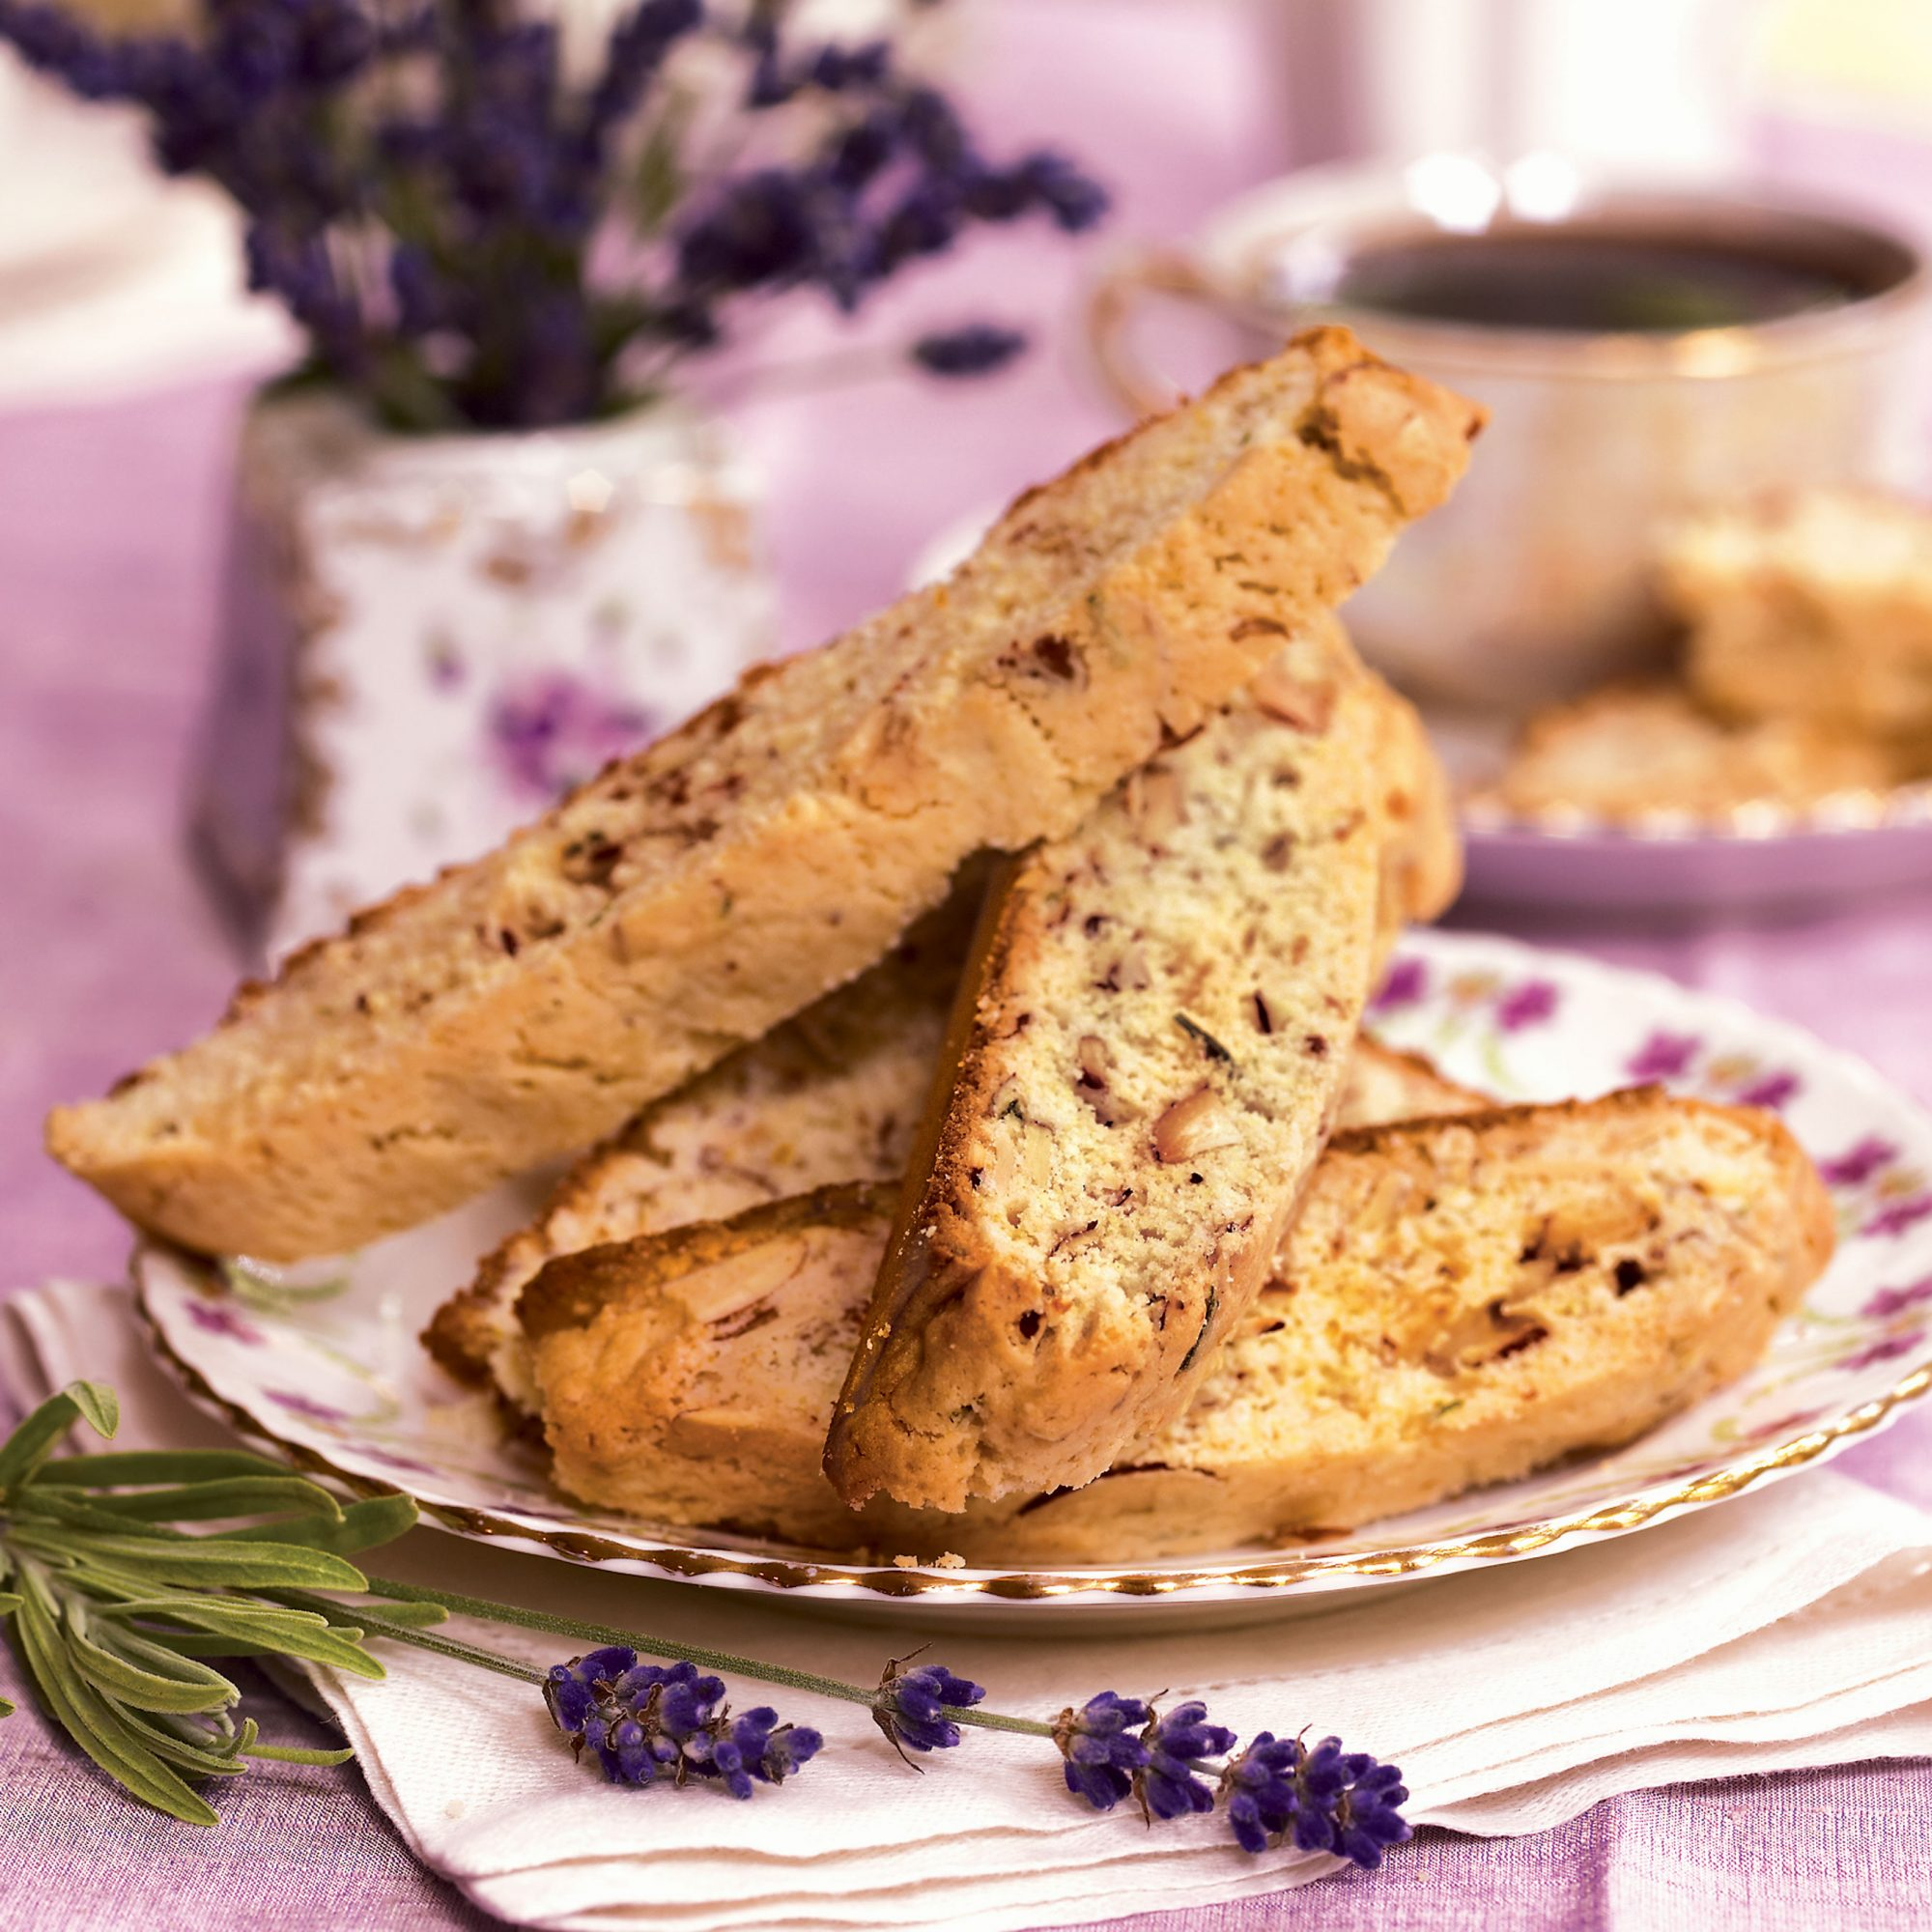 Best Cookies Recipes: Biscotti With Lavender and Orange Recipes